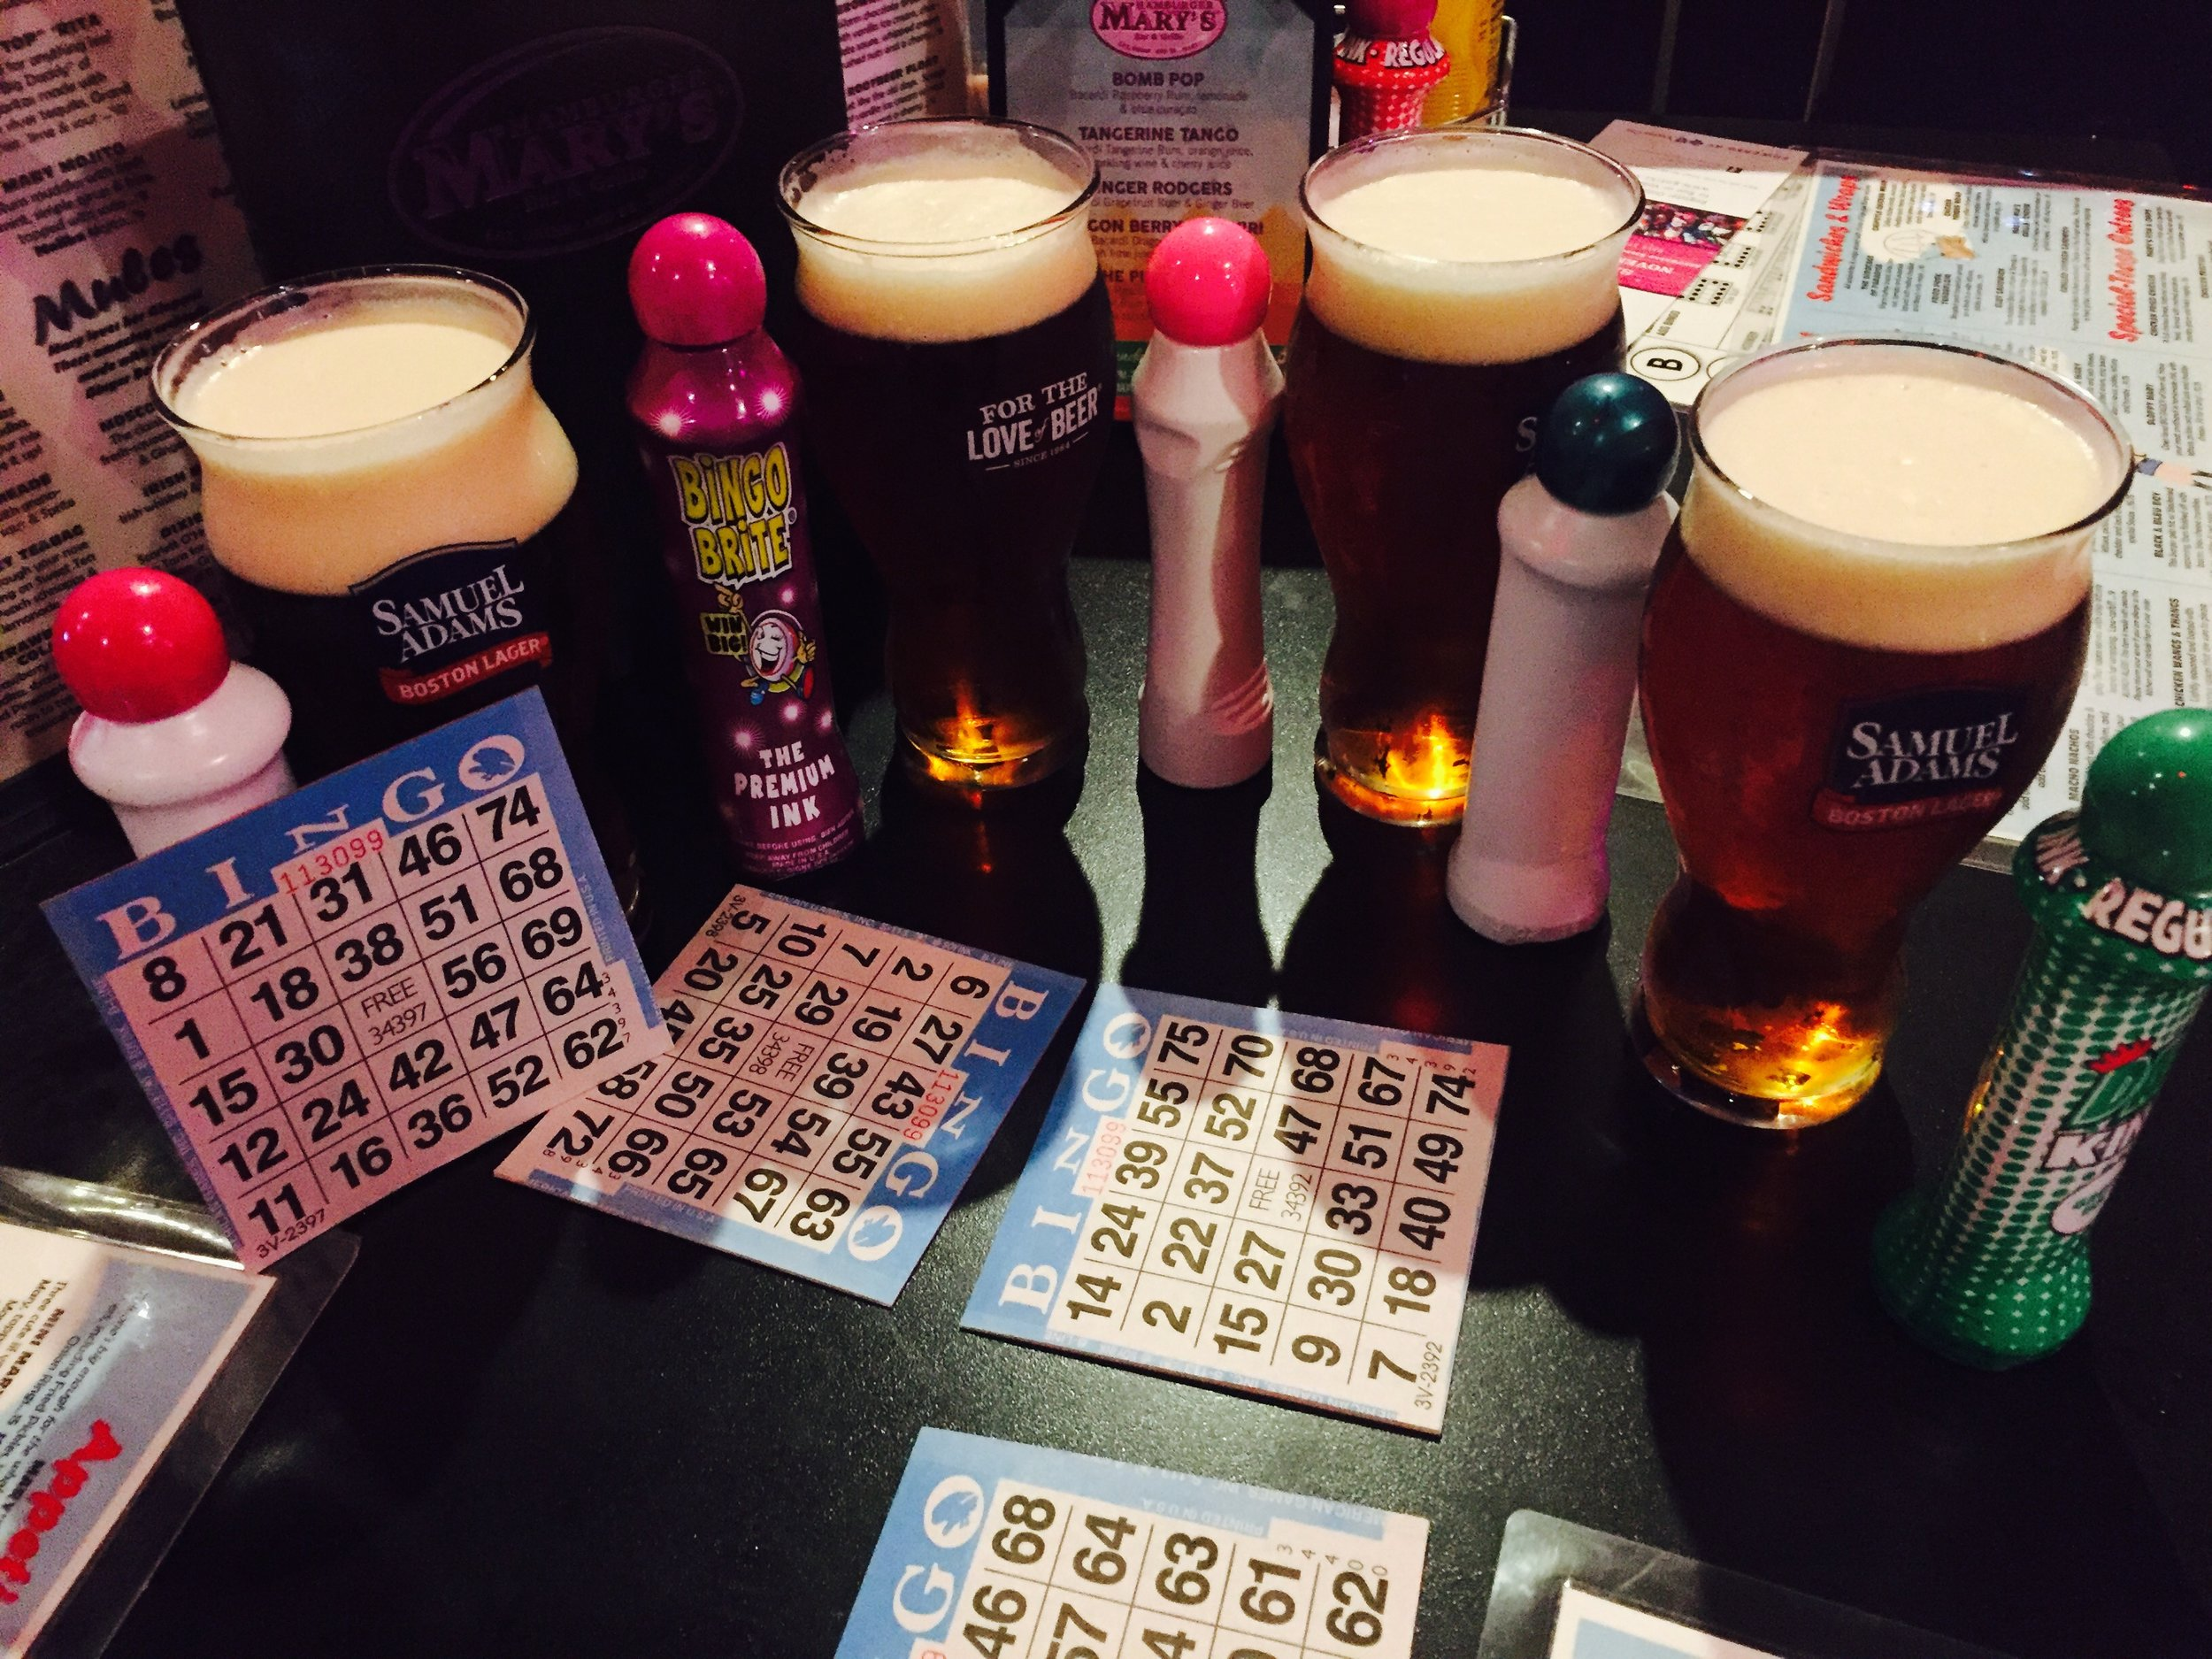 Beers + Drag Bingo = a great Wednesday night!